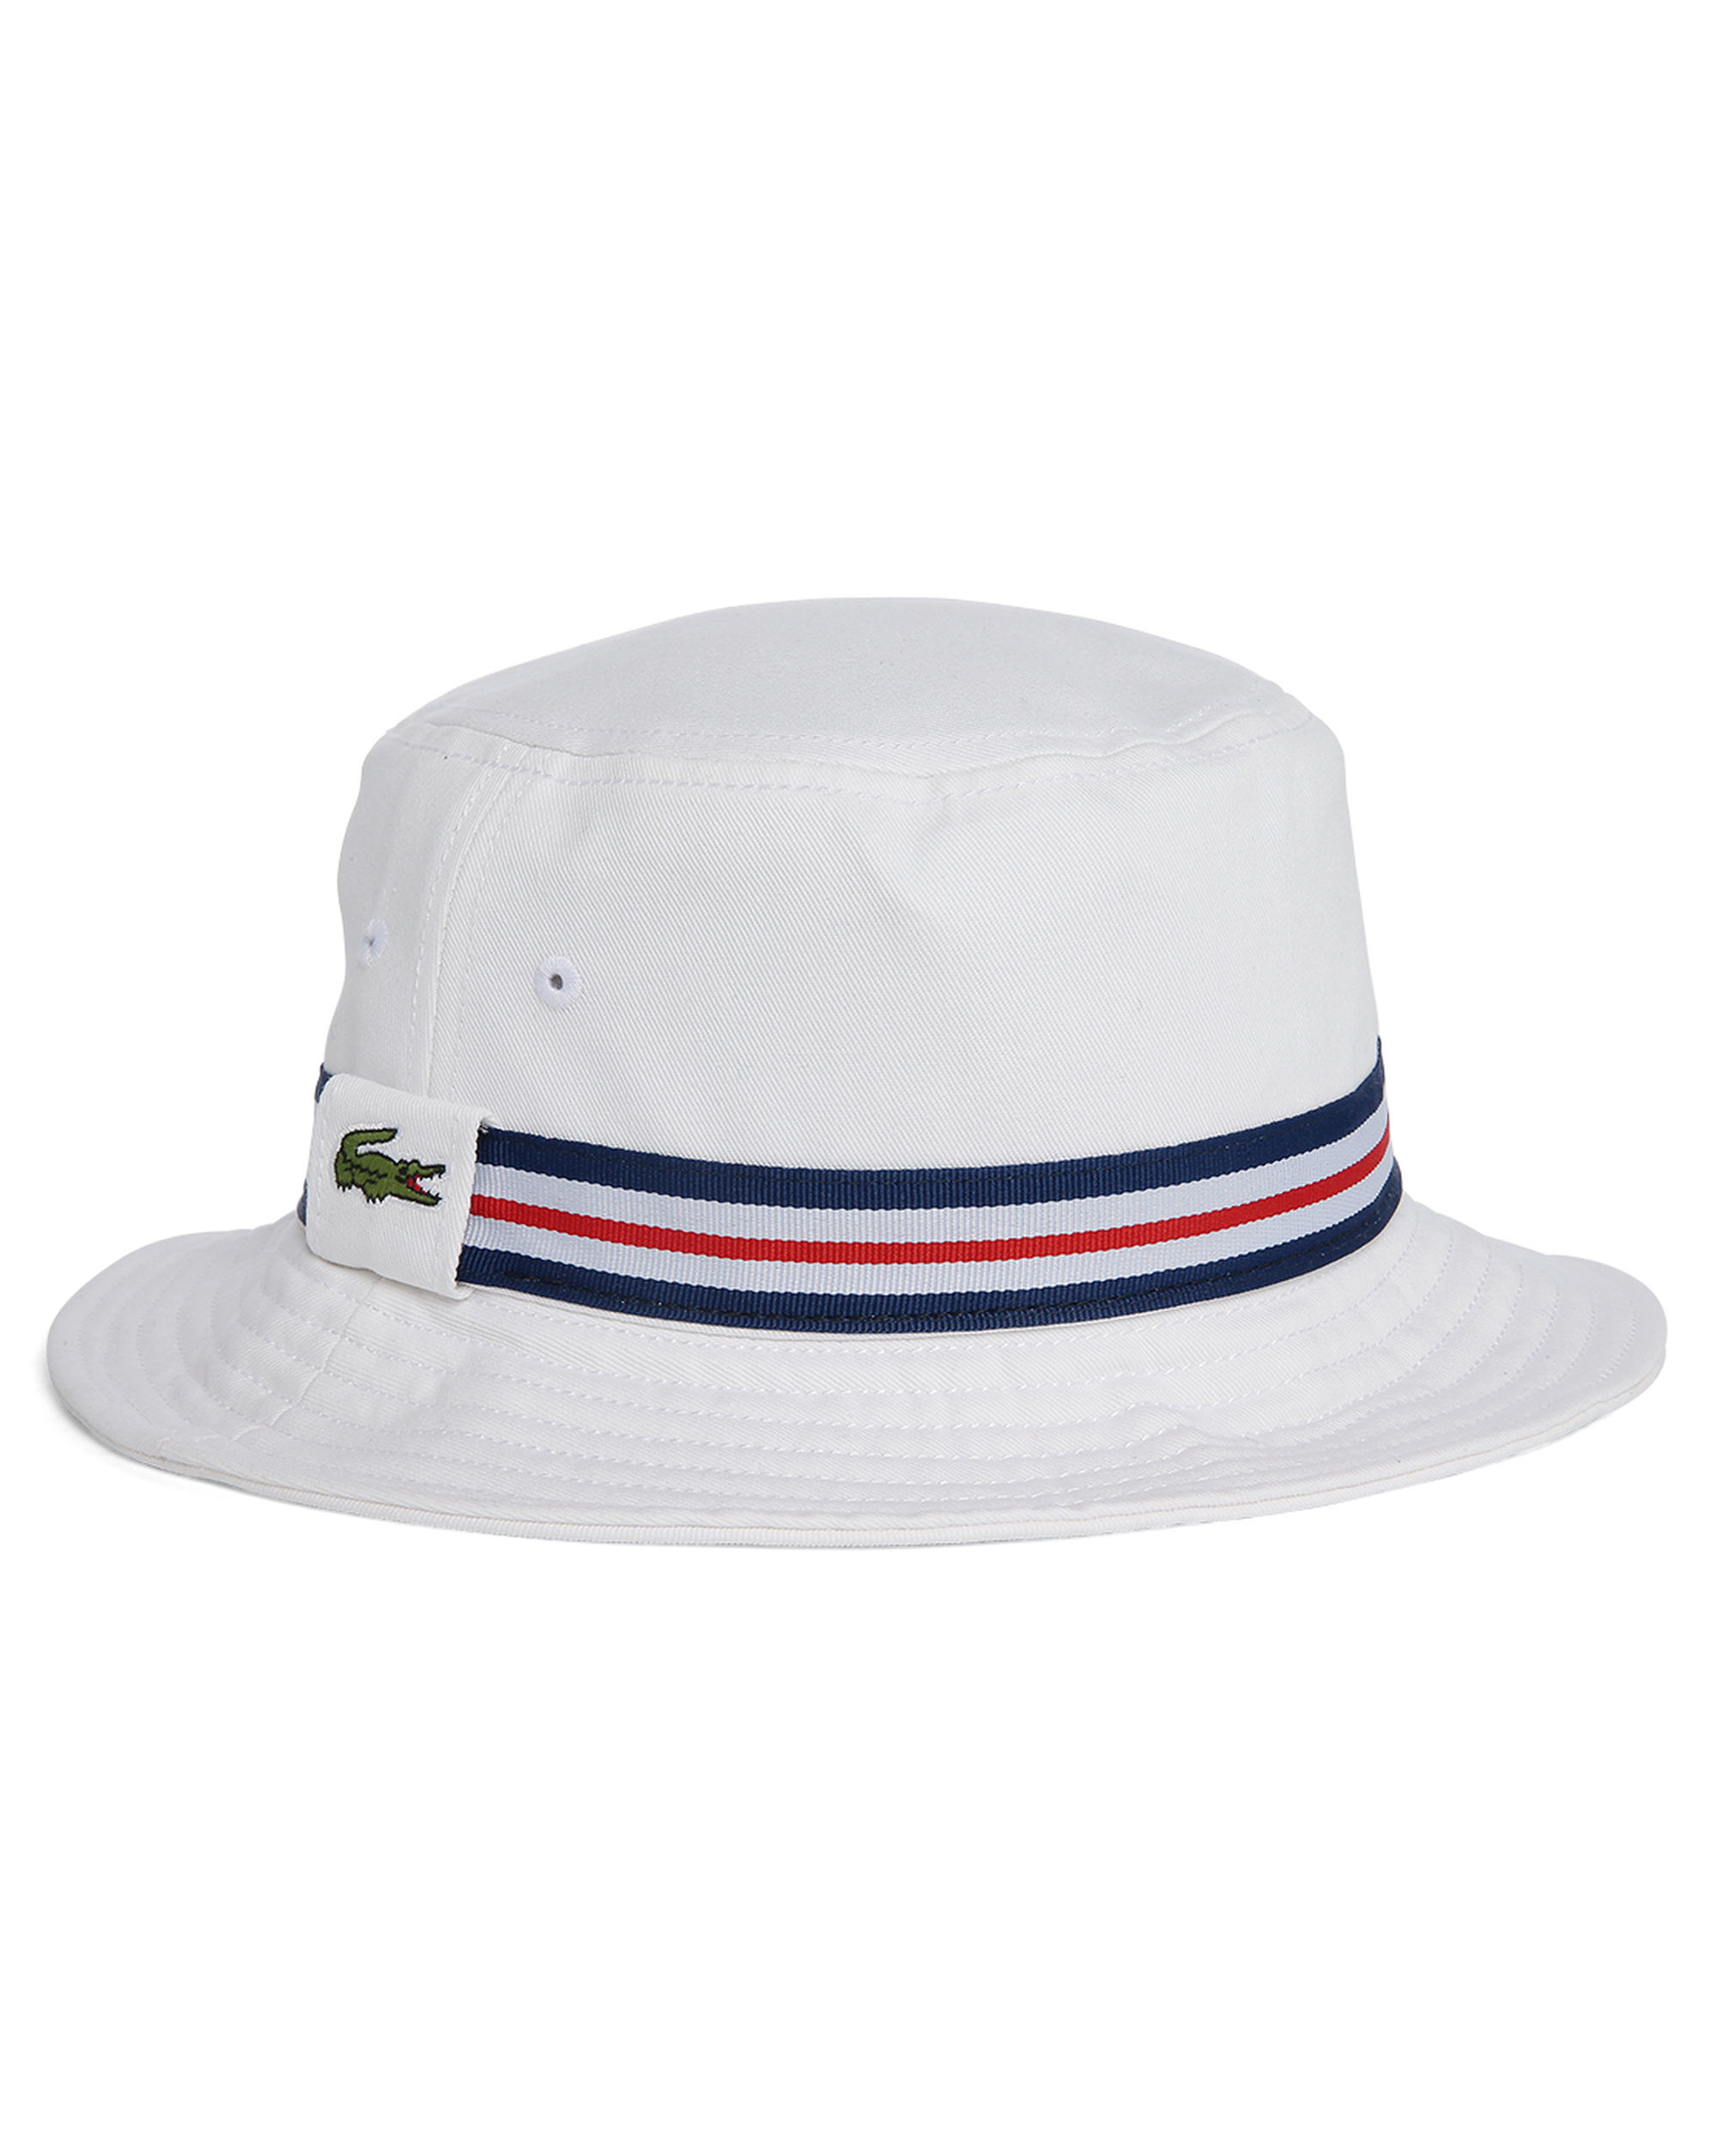 Lacoste White Logo Bucket Hat With Blue White Red Band In